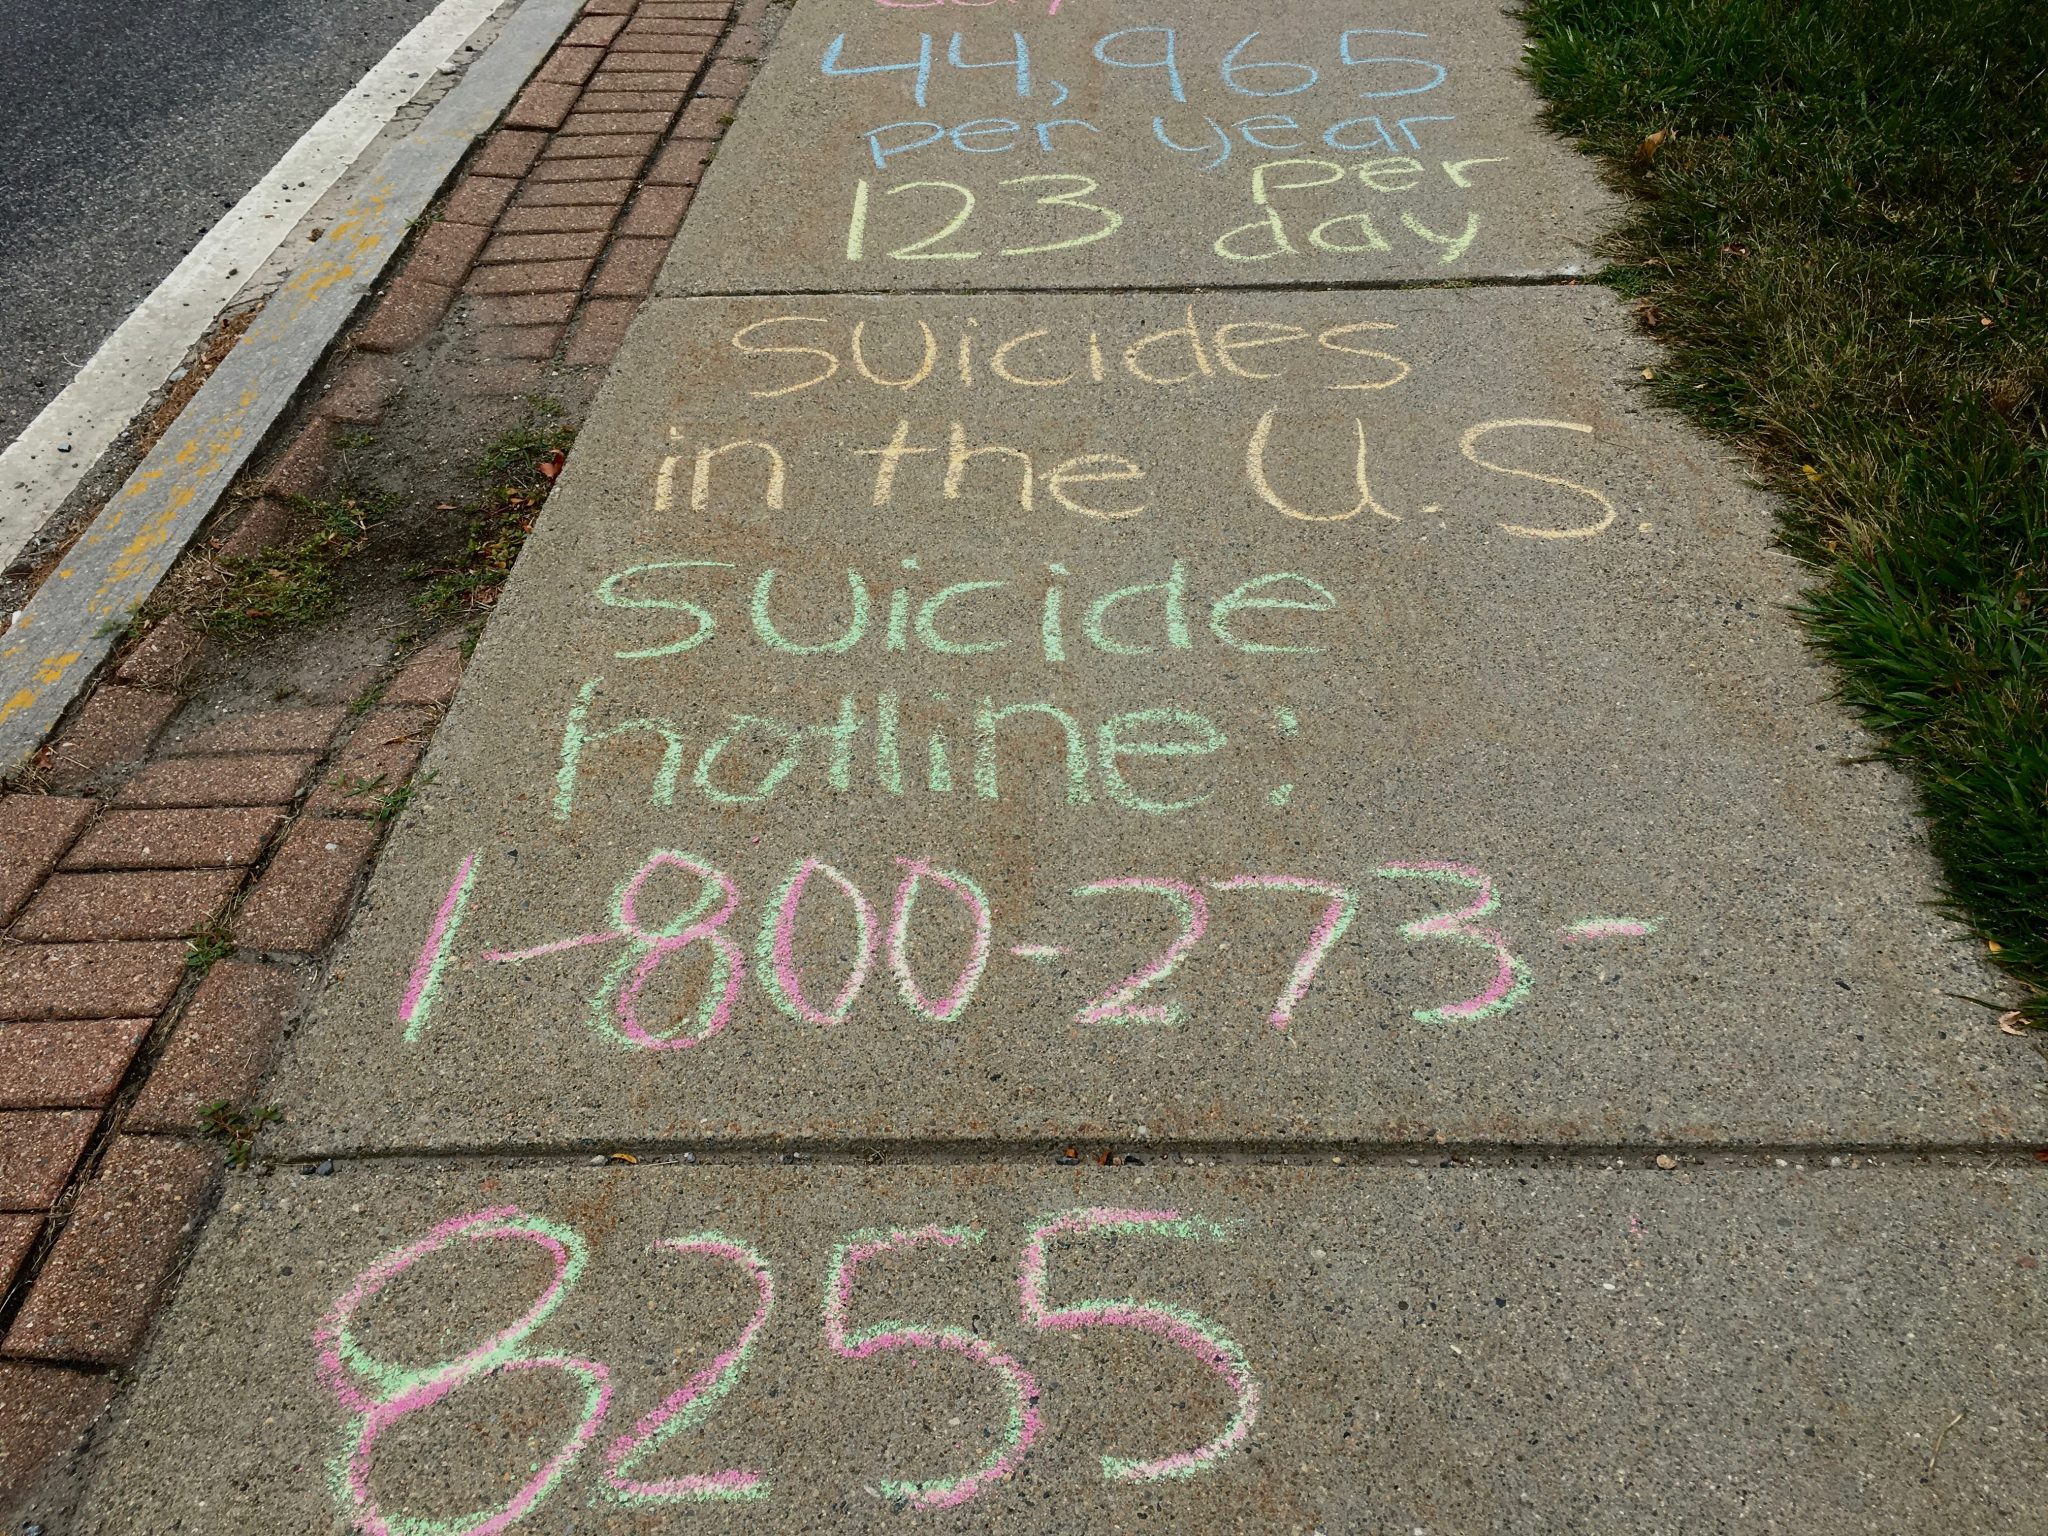 Suicide awareness, Wellesley